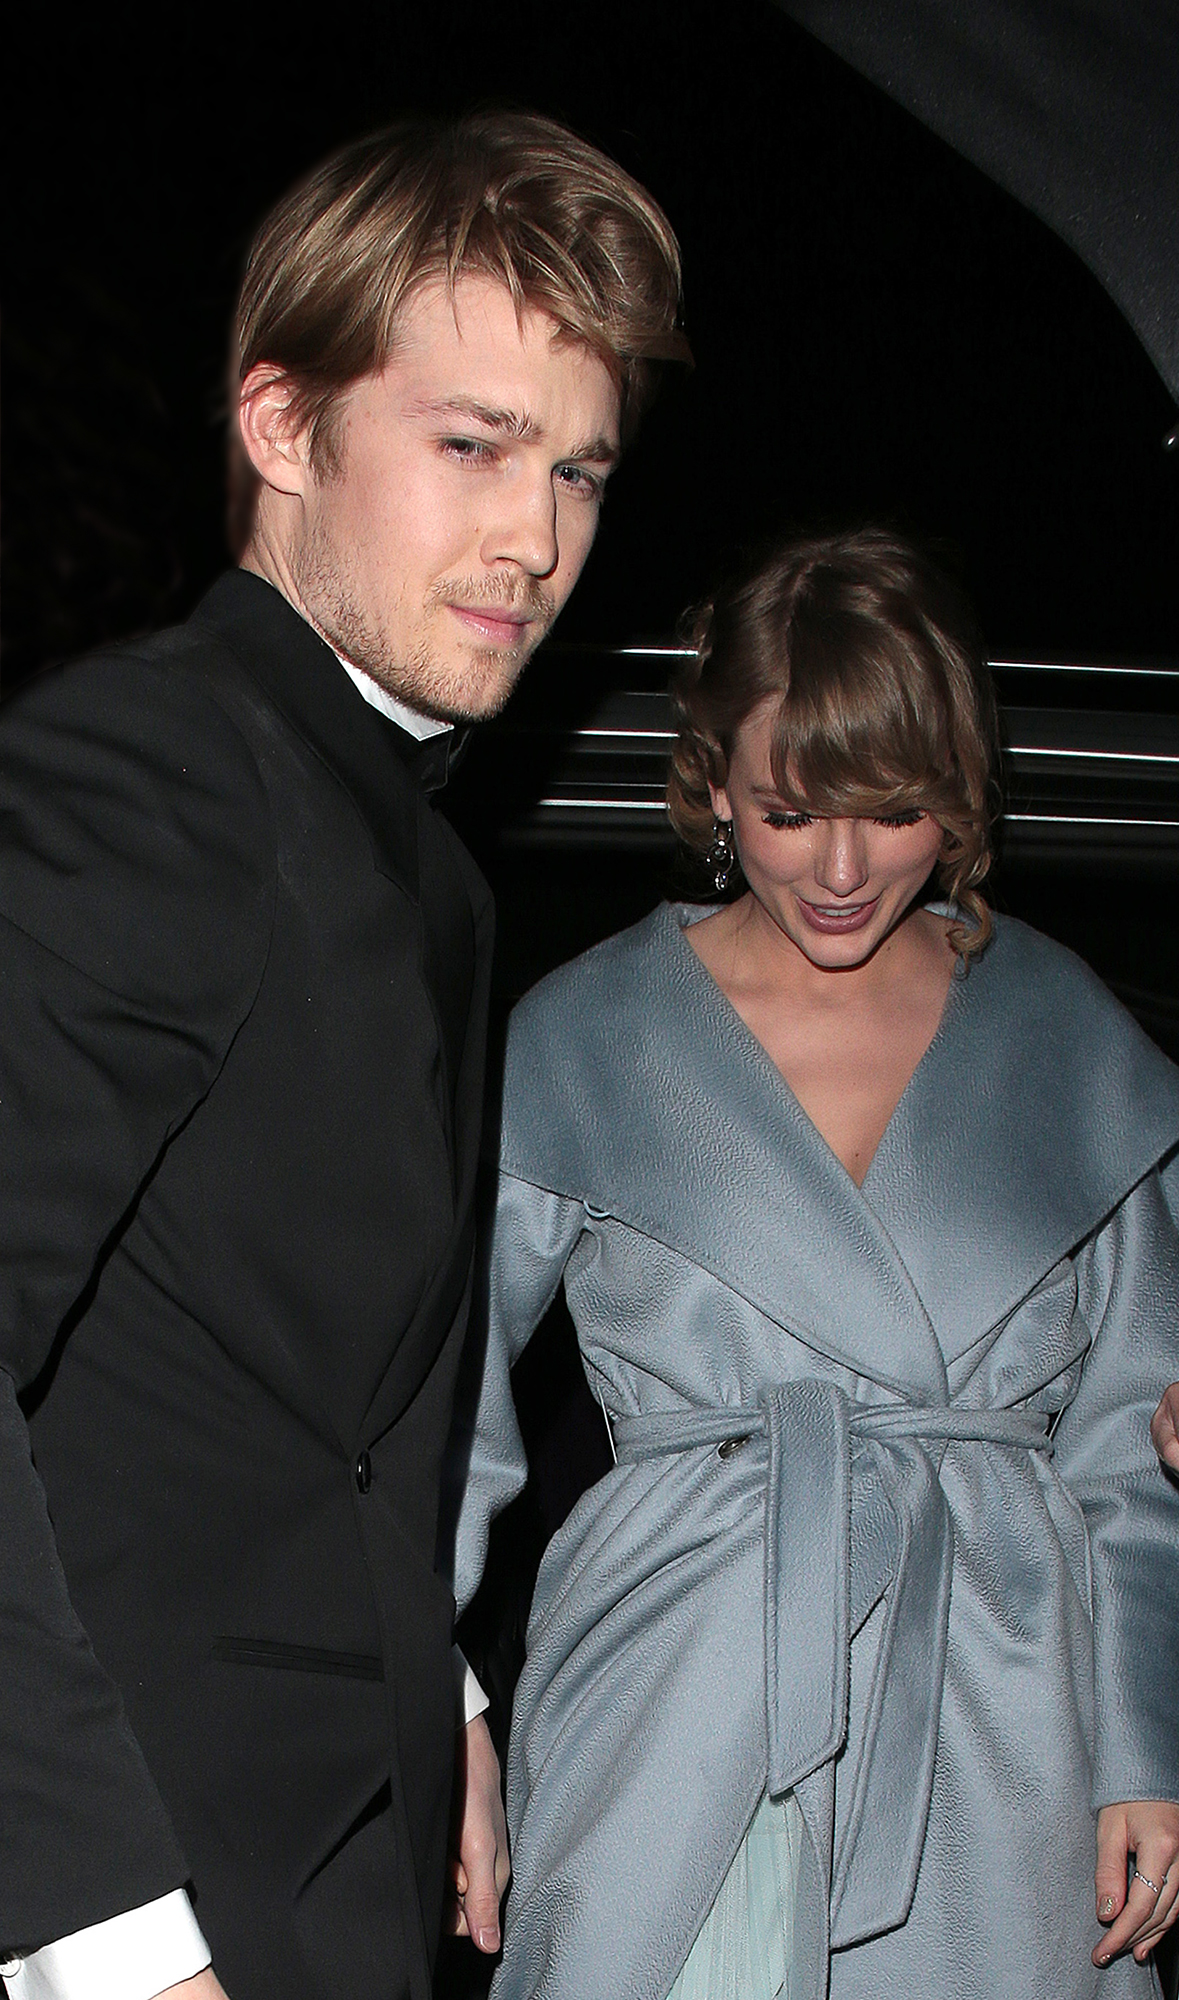 """Taylor Swift's Dating History - In May 2017, word got out that the """"Gorgeous"""" songstress had been dating the British actor — for months! Swift had allegedly been stepping out in London wearing disguises to keep their relationship on the down-low, and even went as far as renting a London pad to be close to her man."""